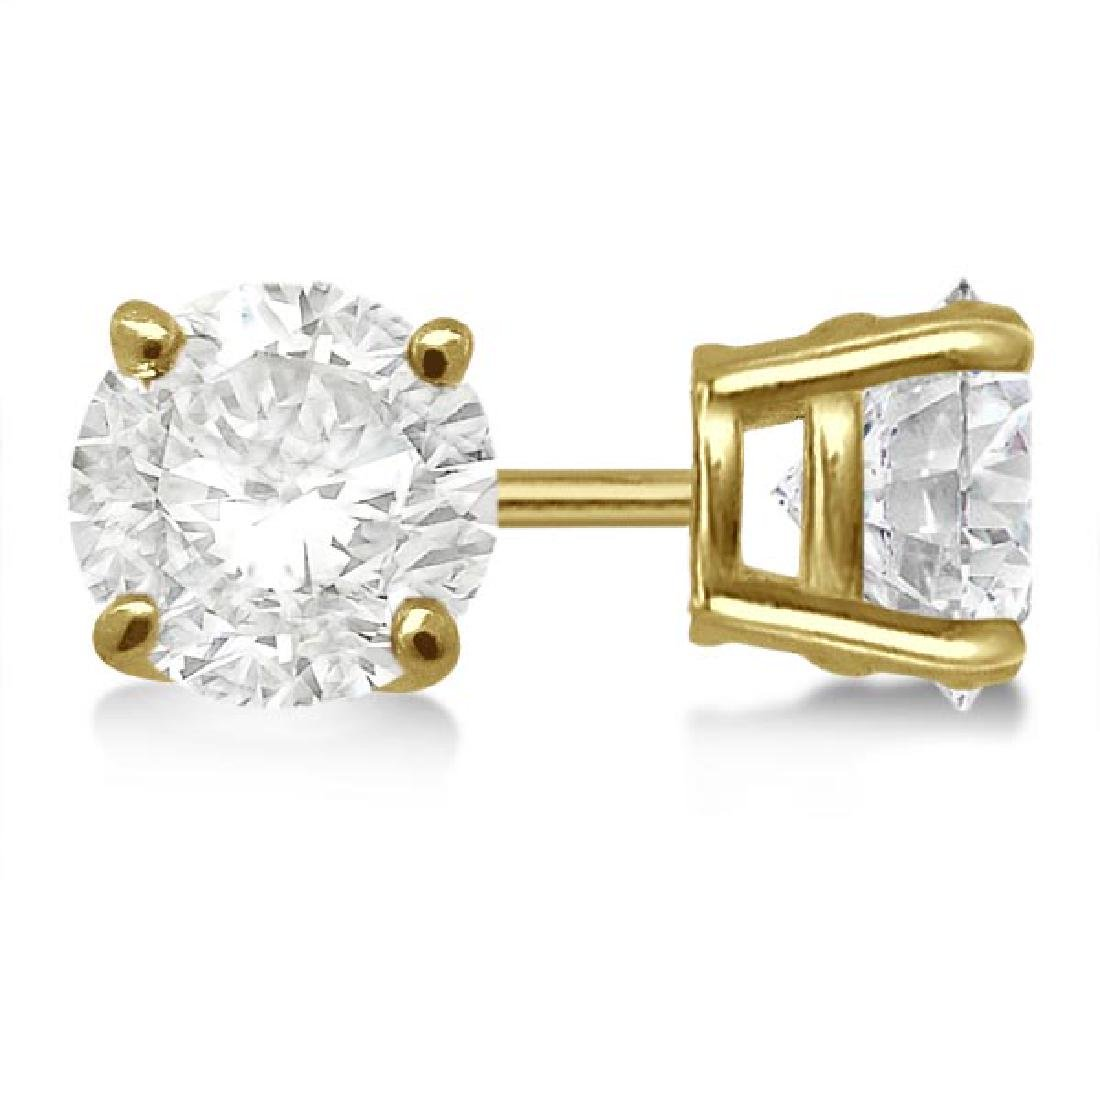 CERTIFIED 0.9 CTW ROUND I/I1 DIAMOND SOLITAIRE EARRINGS